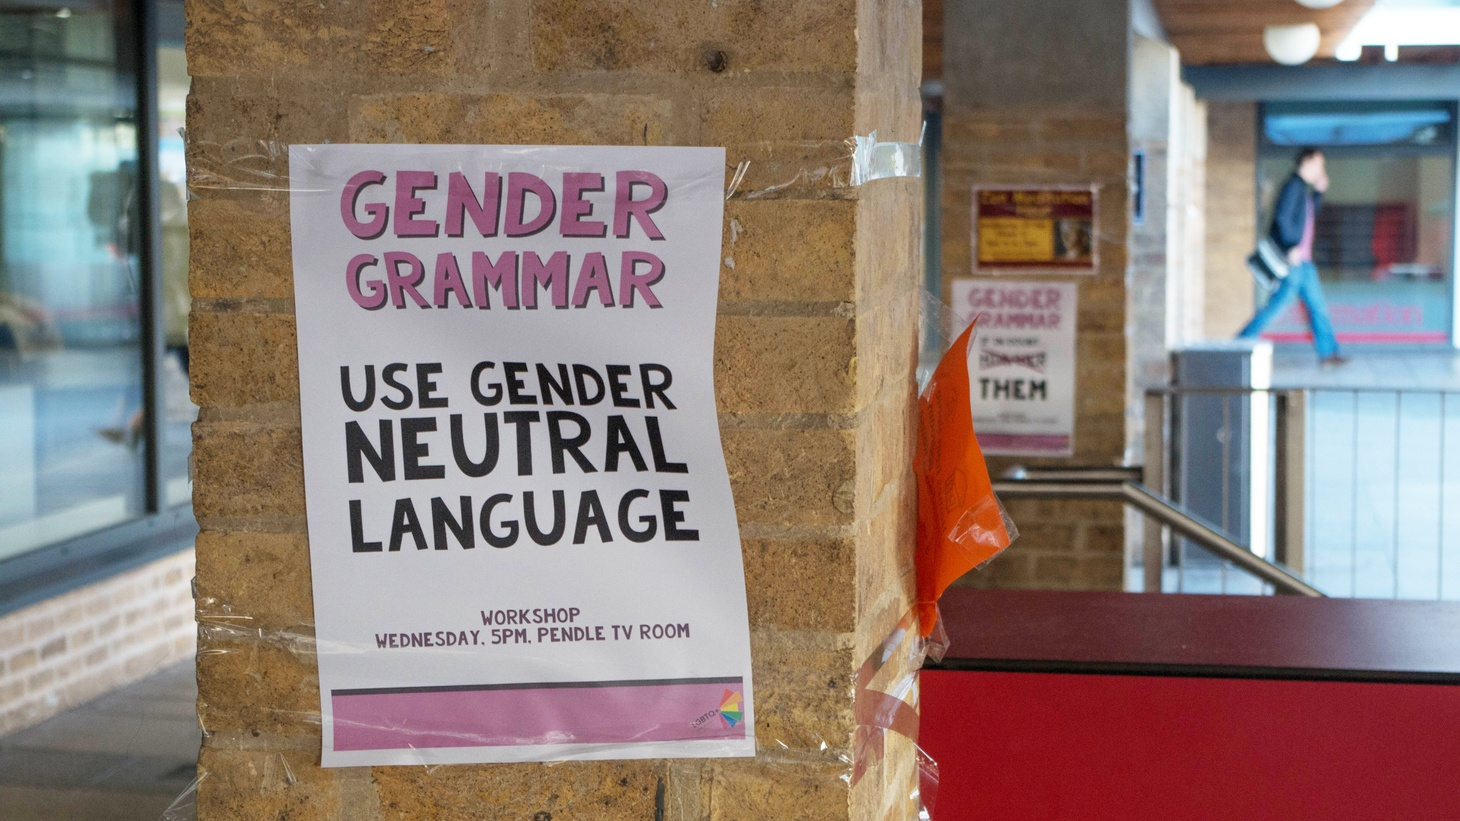 Berkeley's City Council recently adopted an ordinance to drop certain gendered terms from the city's municipal code.